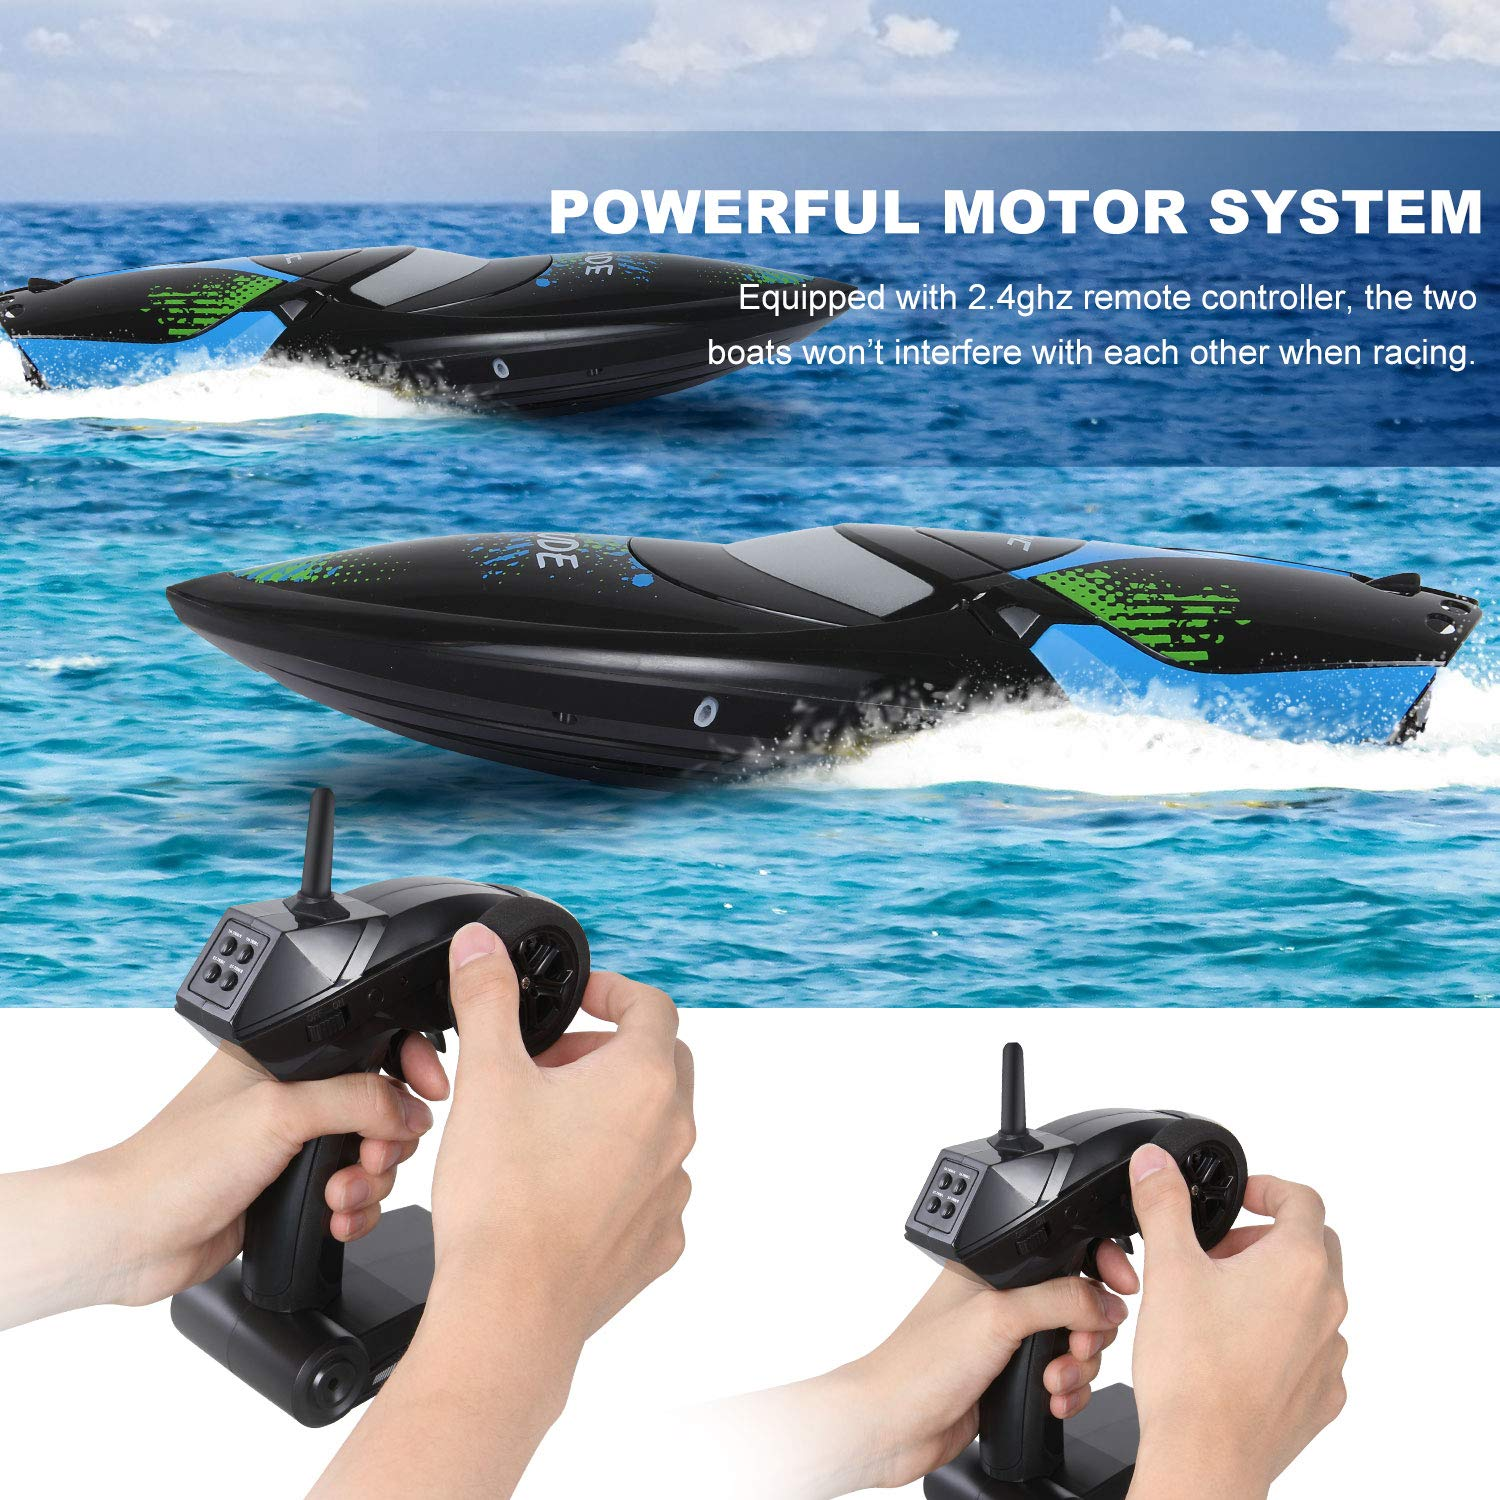 ANTAPRCIS 25km/h RC Boat, 2.4GHz 180° Flip Remote Control Race Boat for Pool Lake Boy Adult, Black by ANTAPRCIS (Image #5)